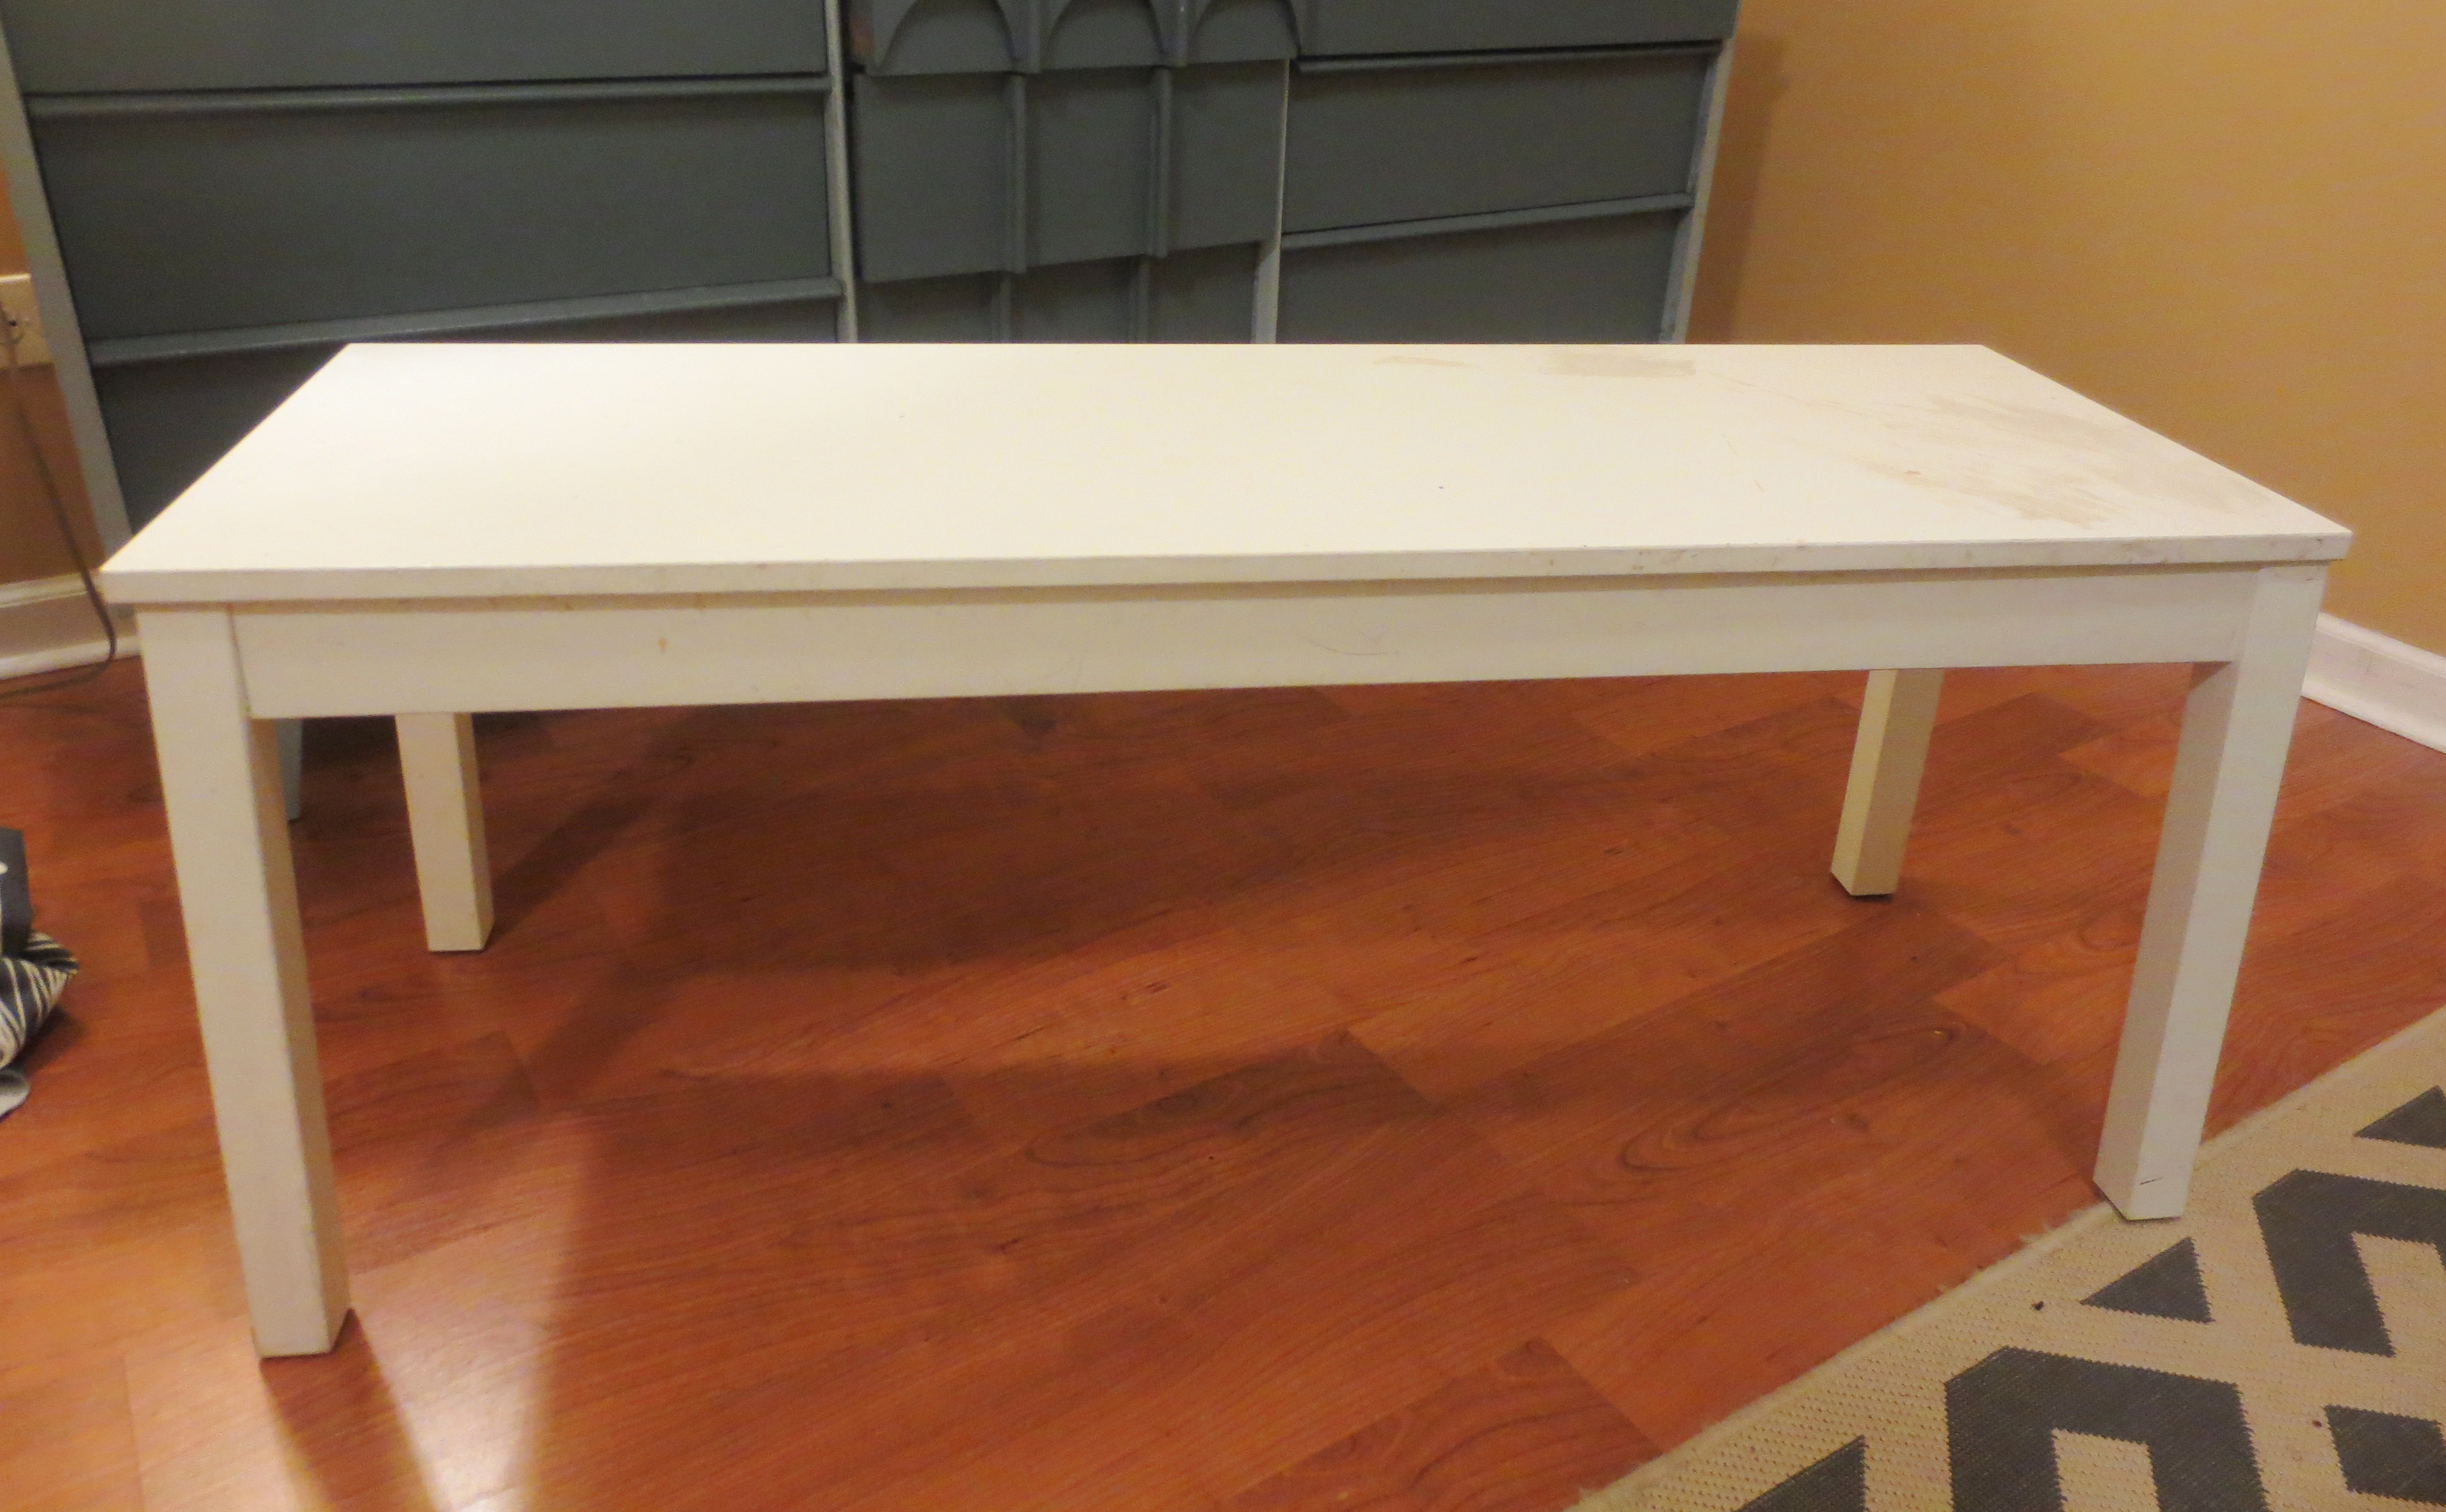 Transform Your Pockmarked Ikea Bench Into A Thing Of Beauty Projectophile